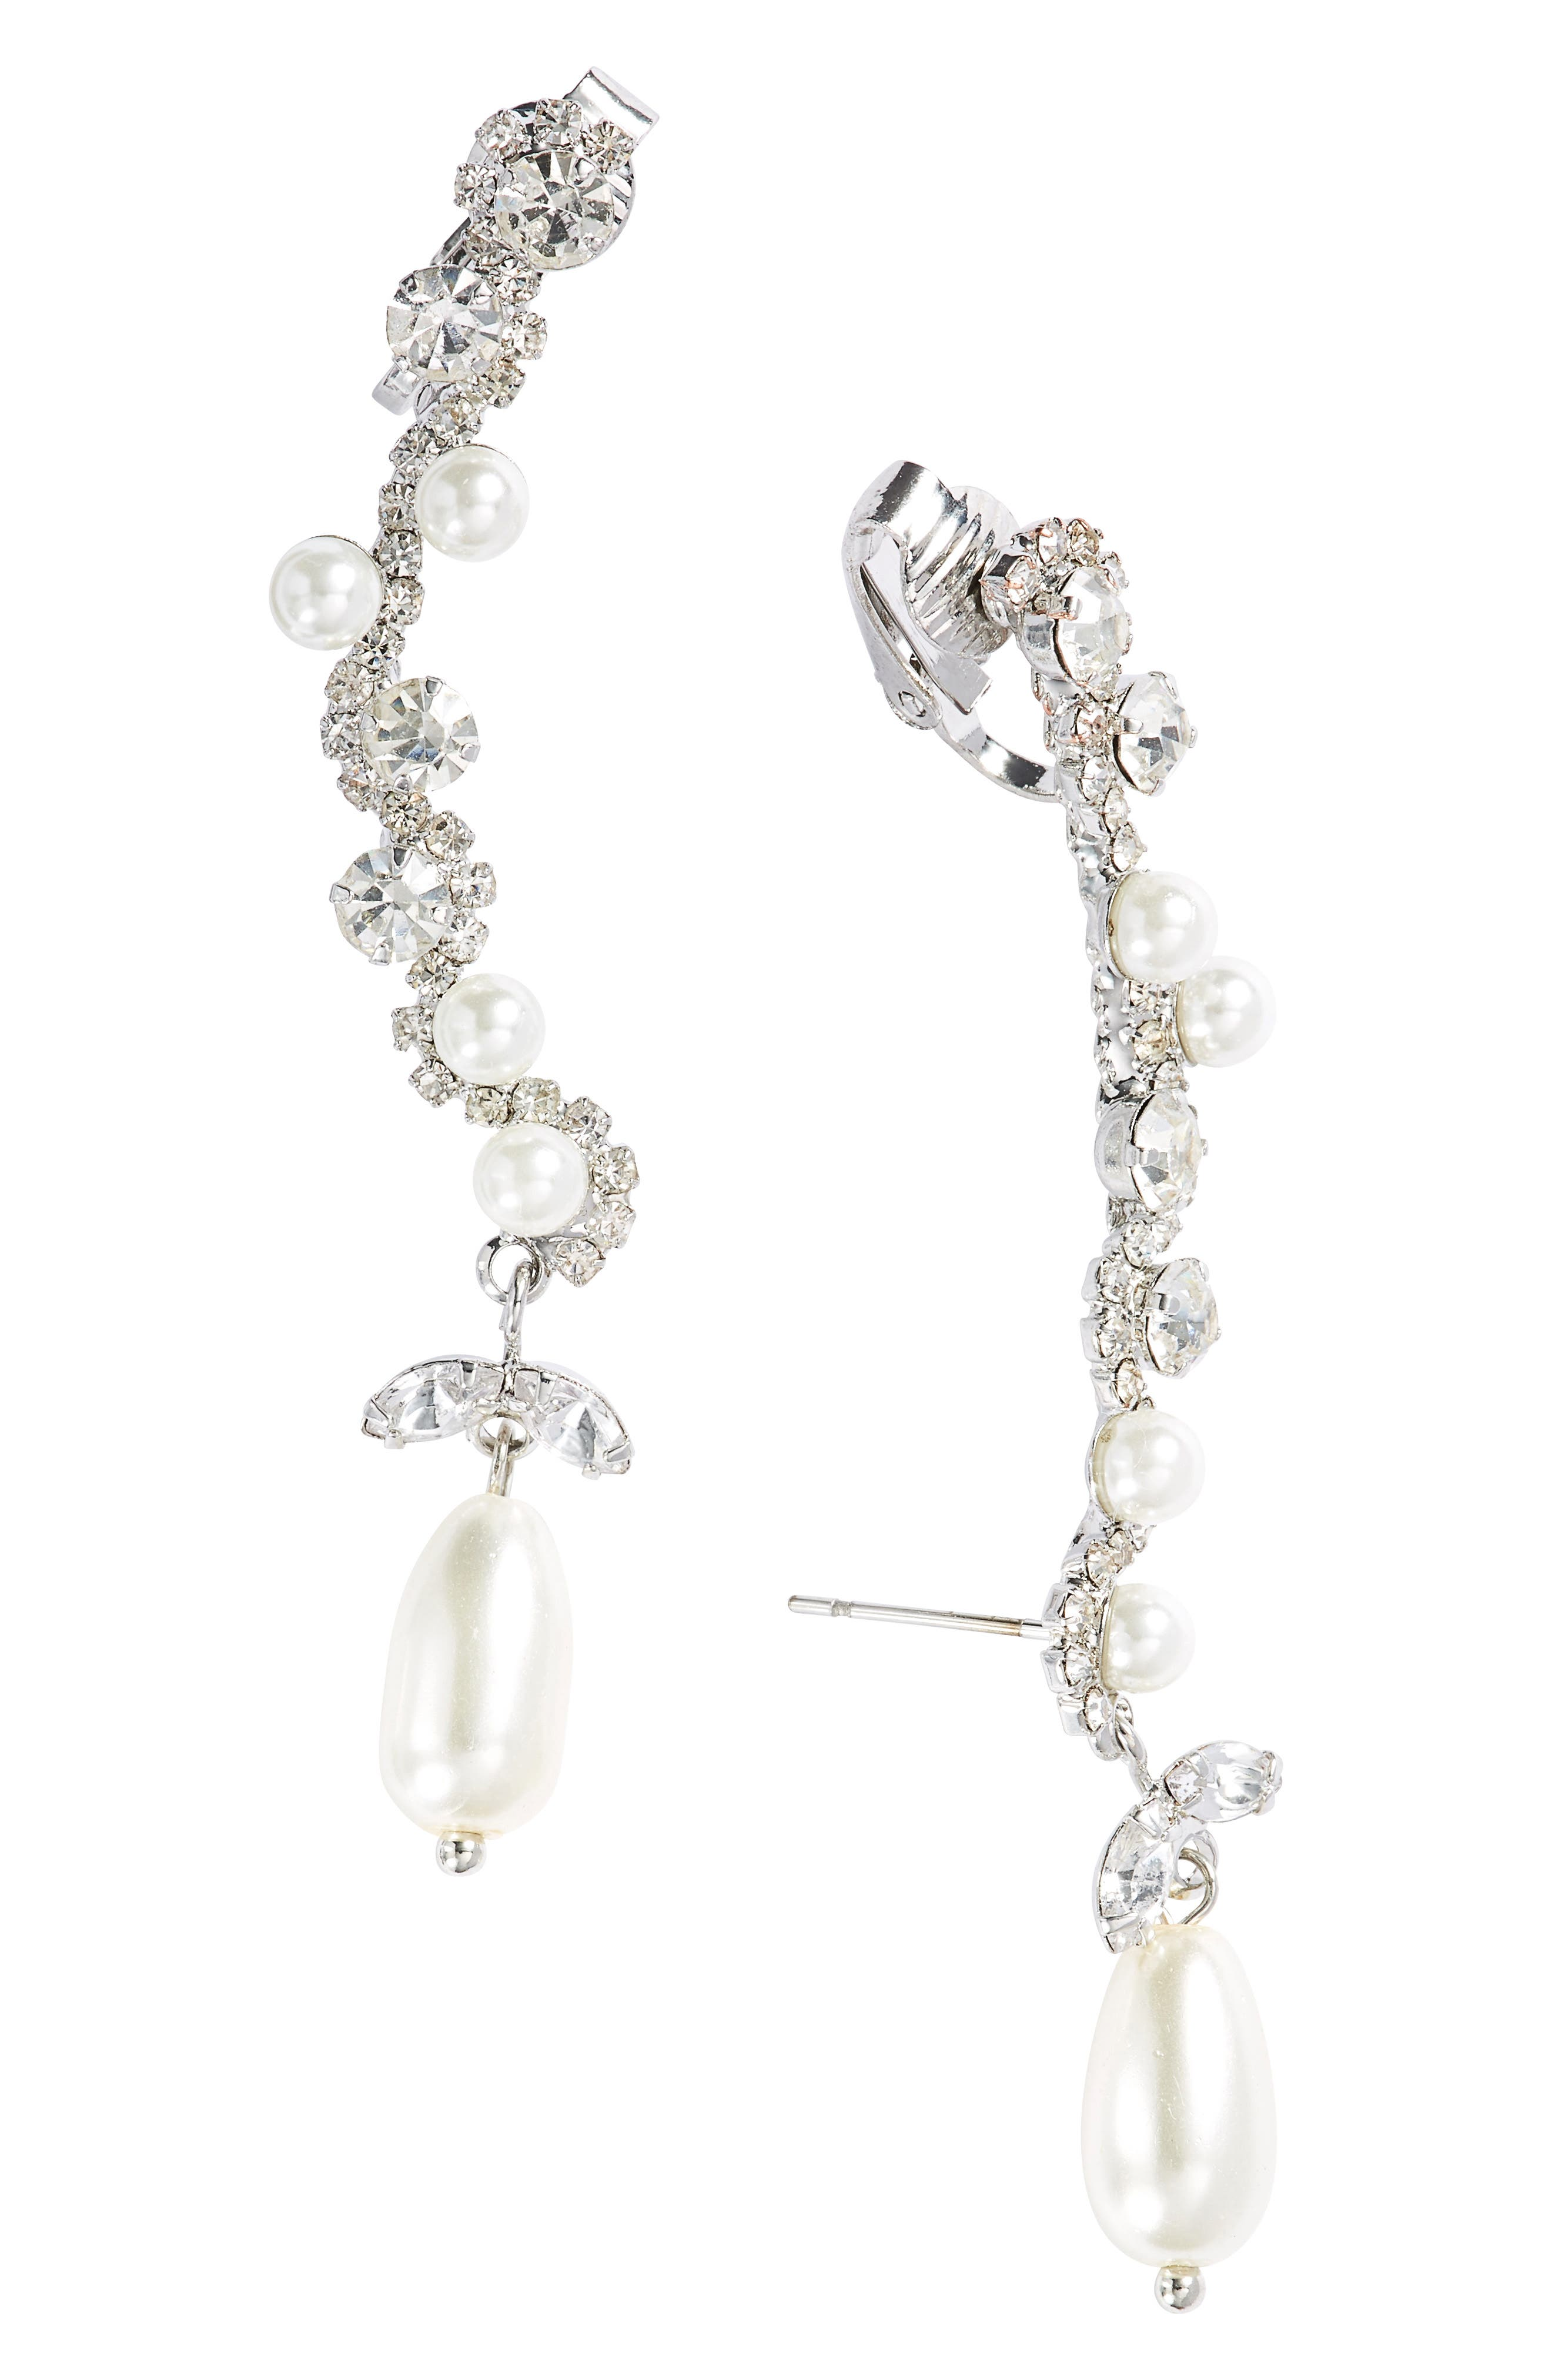 CRISTABELLE Imitation Pearl & Crystal Clip Ear Crawlers